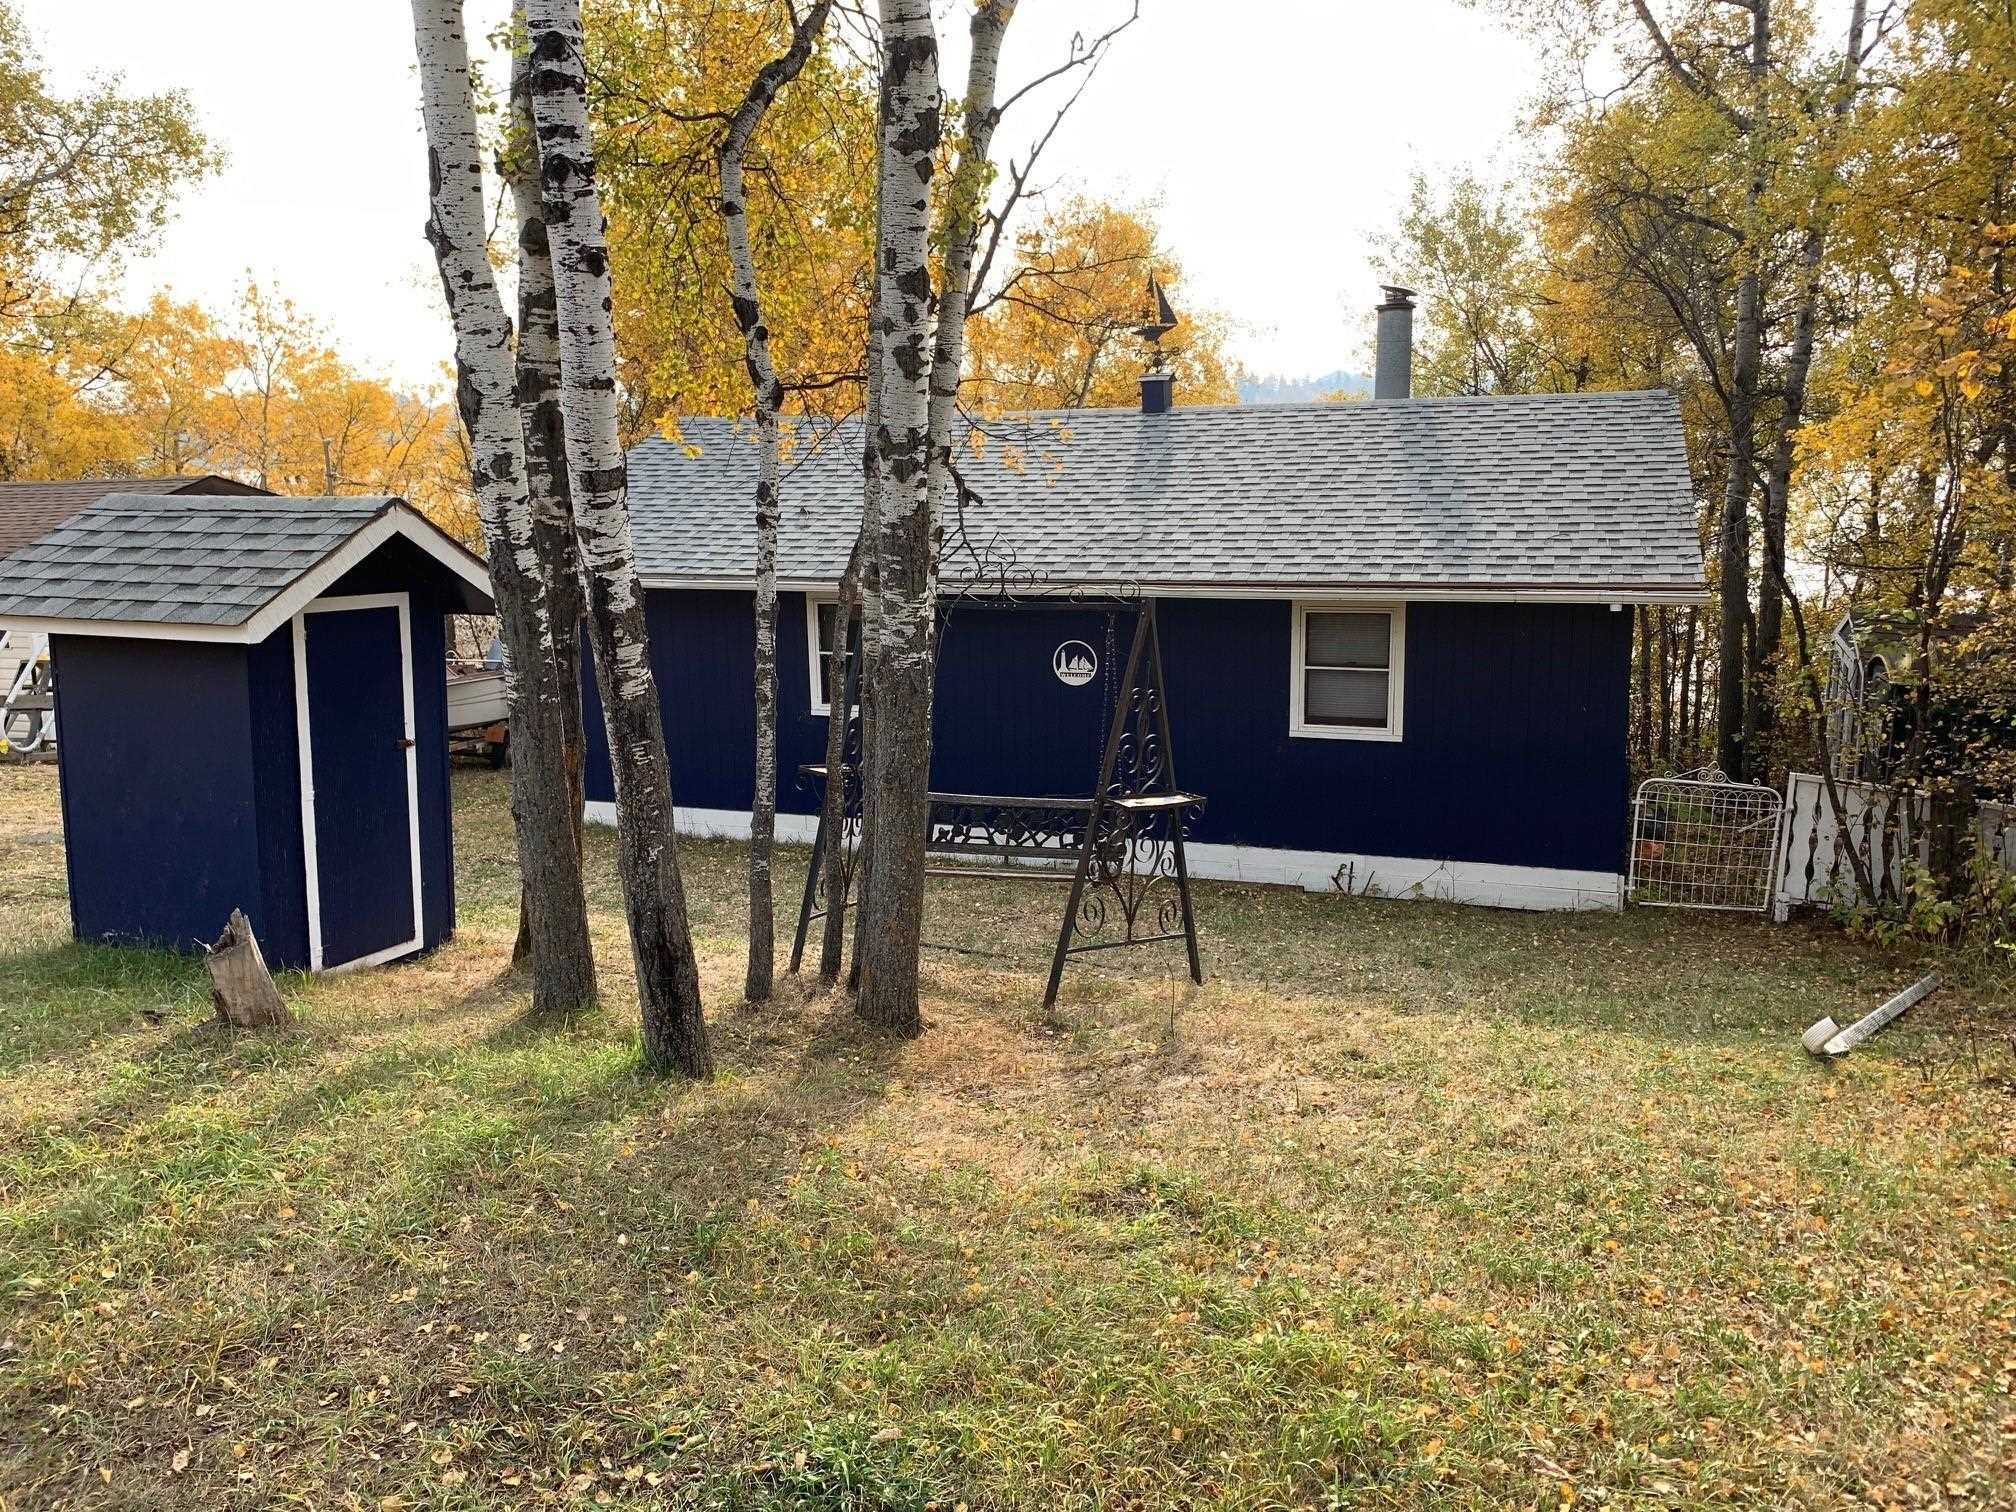 Main Photo: #13 Lakeview DR: Hardisty Cottage for sale : MLS®# E4265435